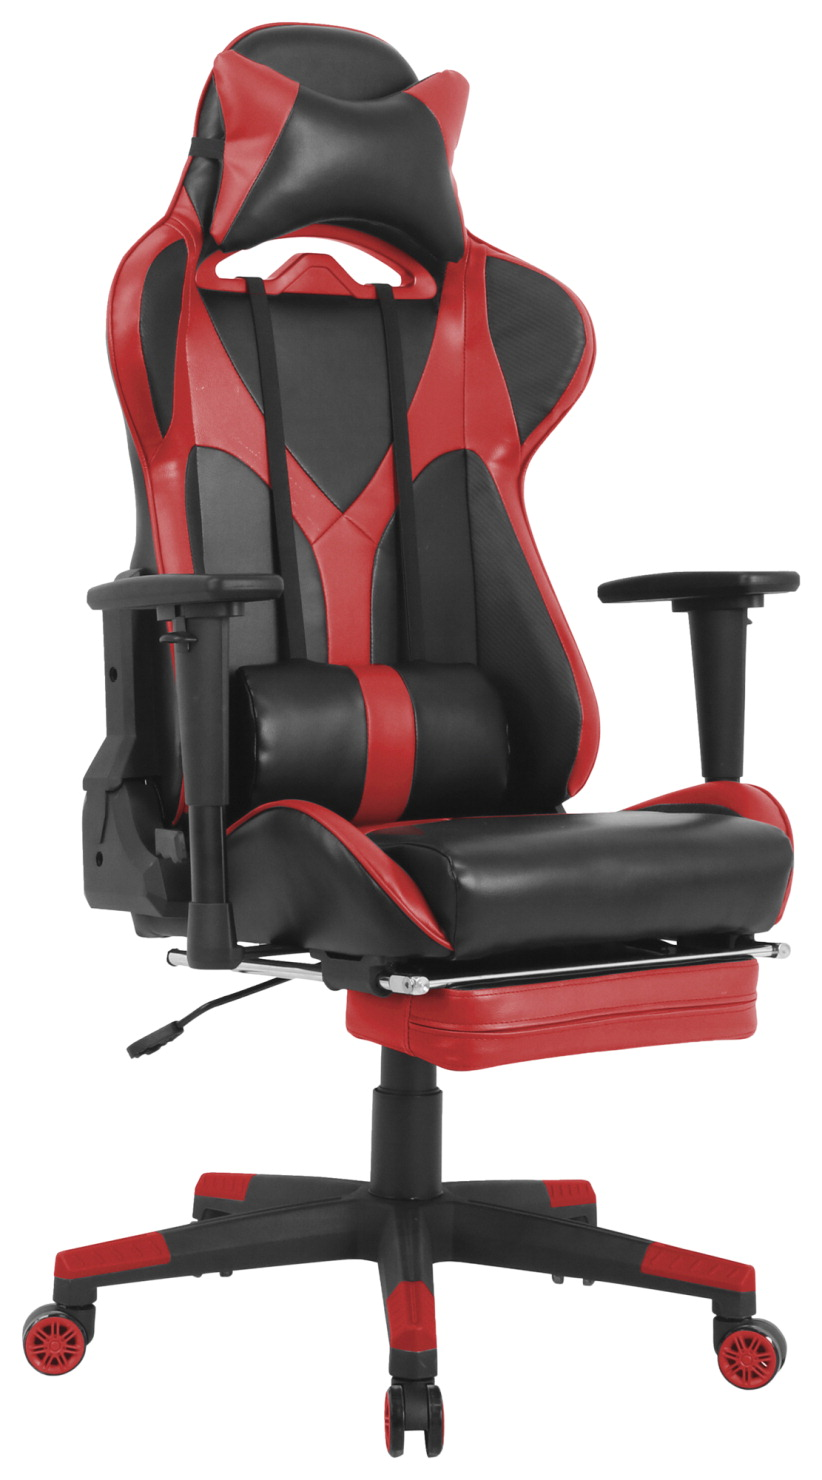 Superb Classroom Select Foldable Footrest High Back Gaming Chair Chair Gaming High Back 20 9 10Wx44 3 5Lx52H Red Black Bralicious Painted Fabric Chair Ideas Braliciousco